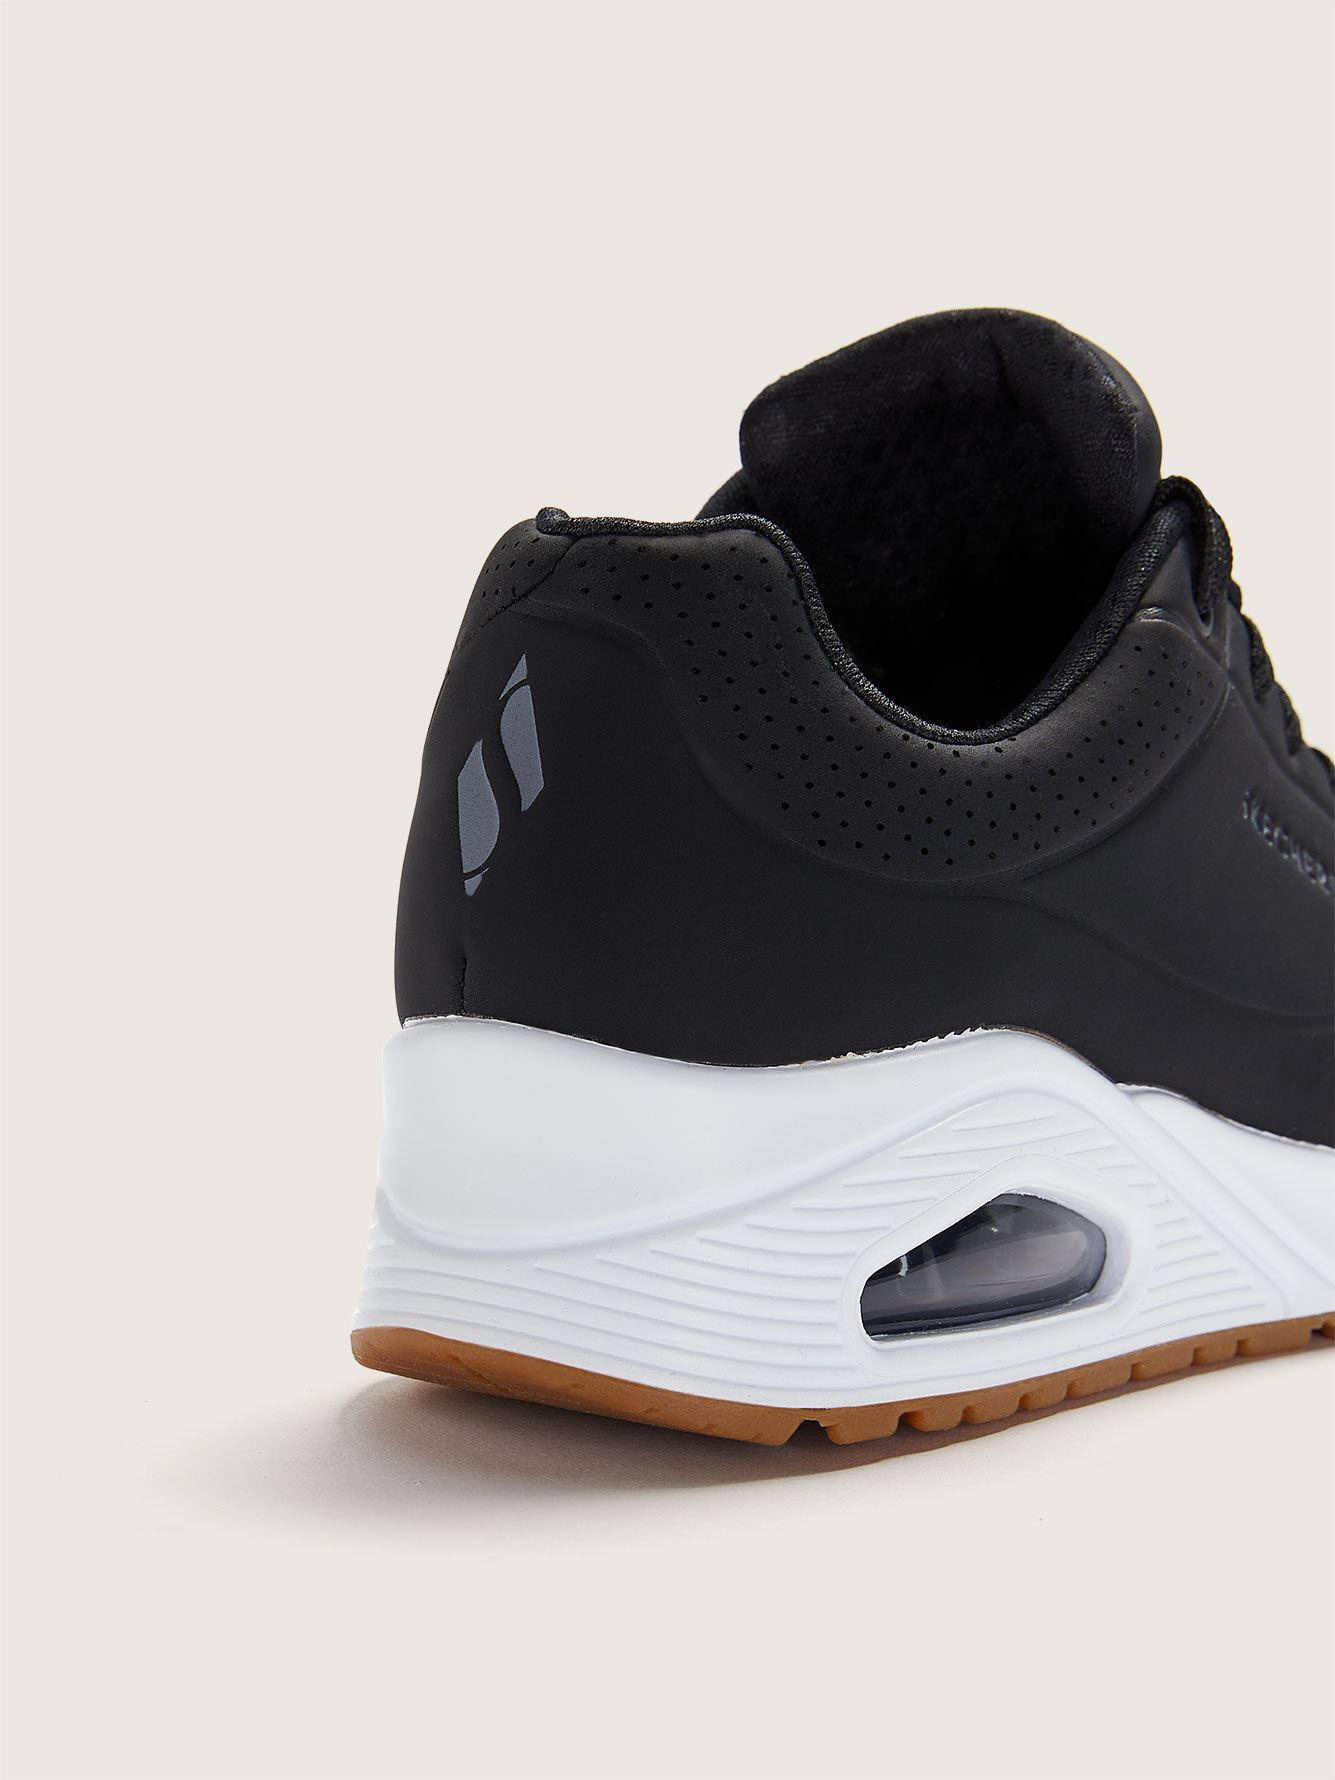 Wide Uno Stand On Air Sneaker - Skechers